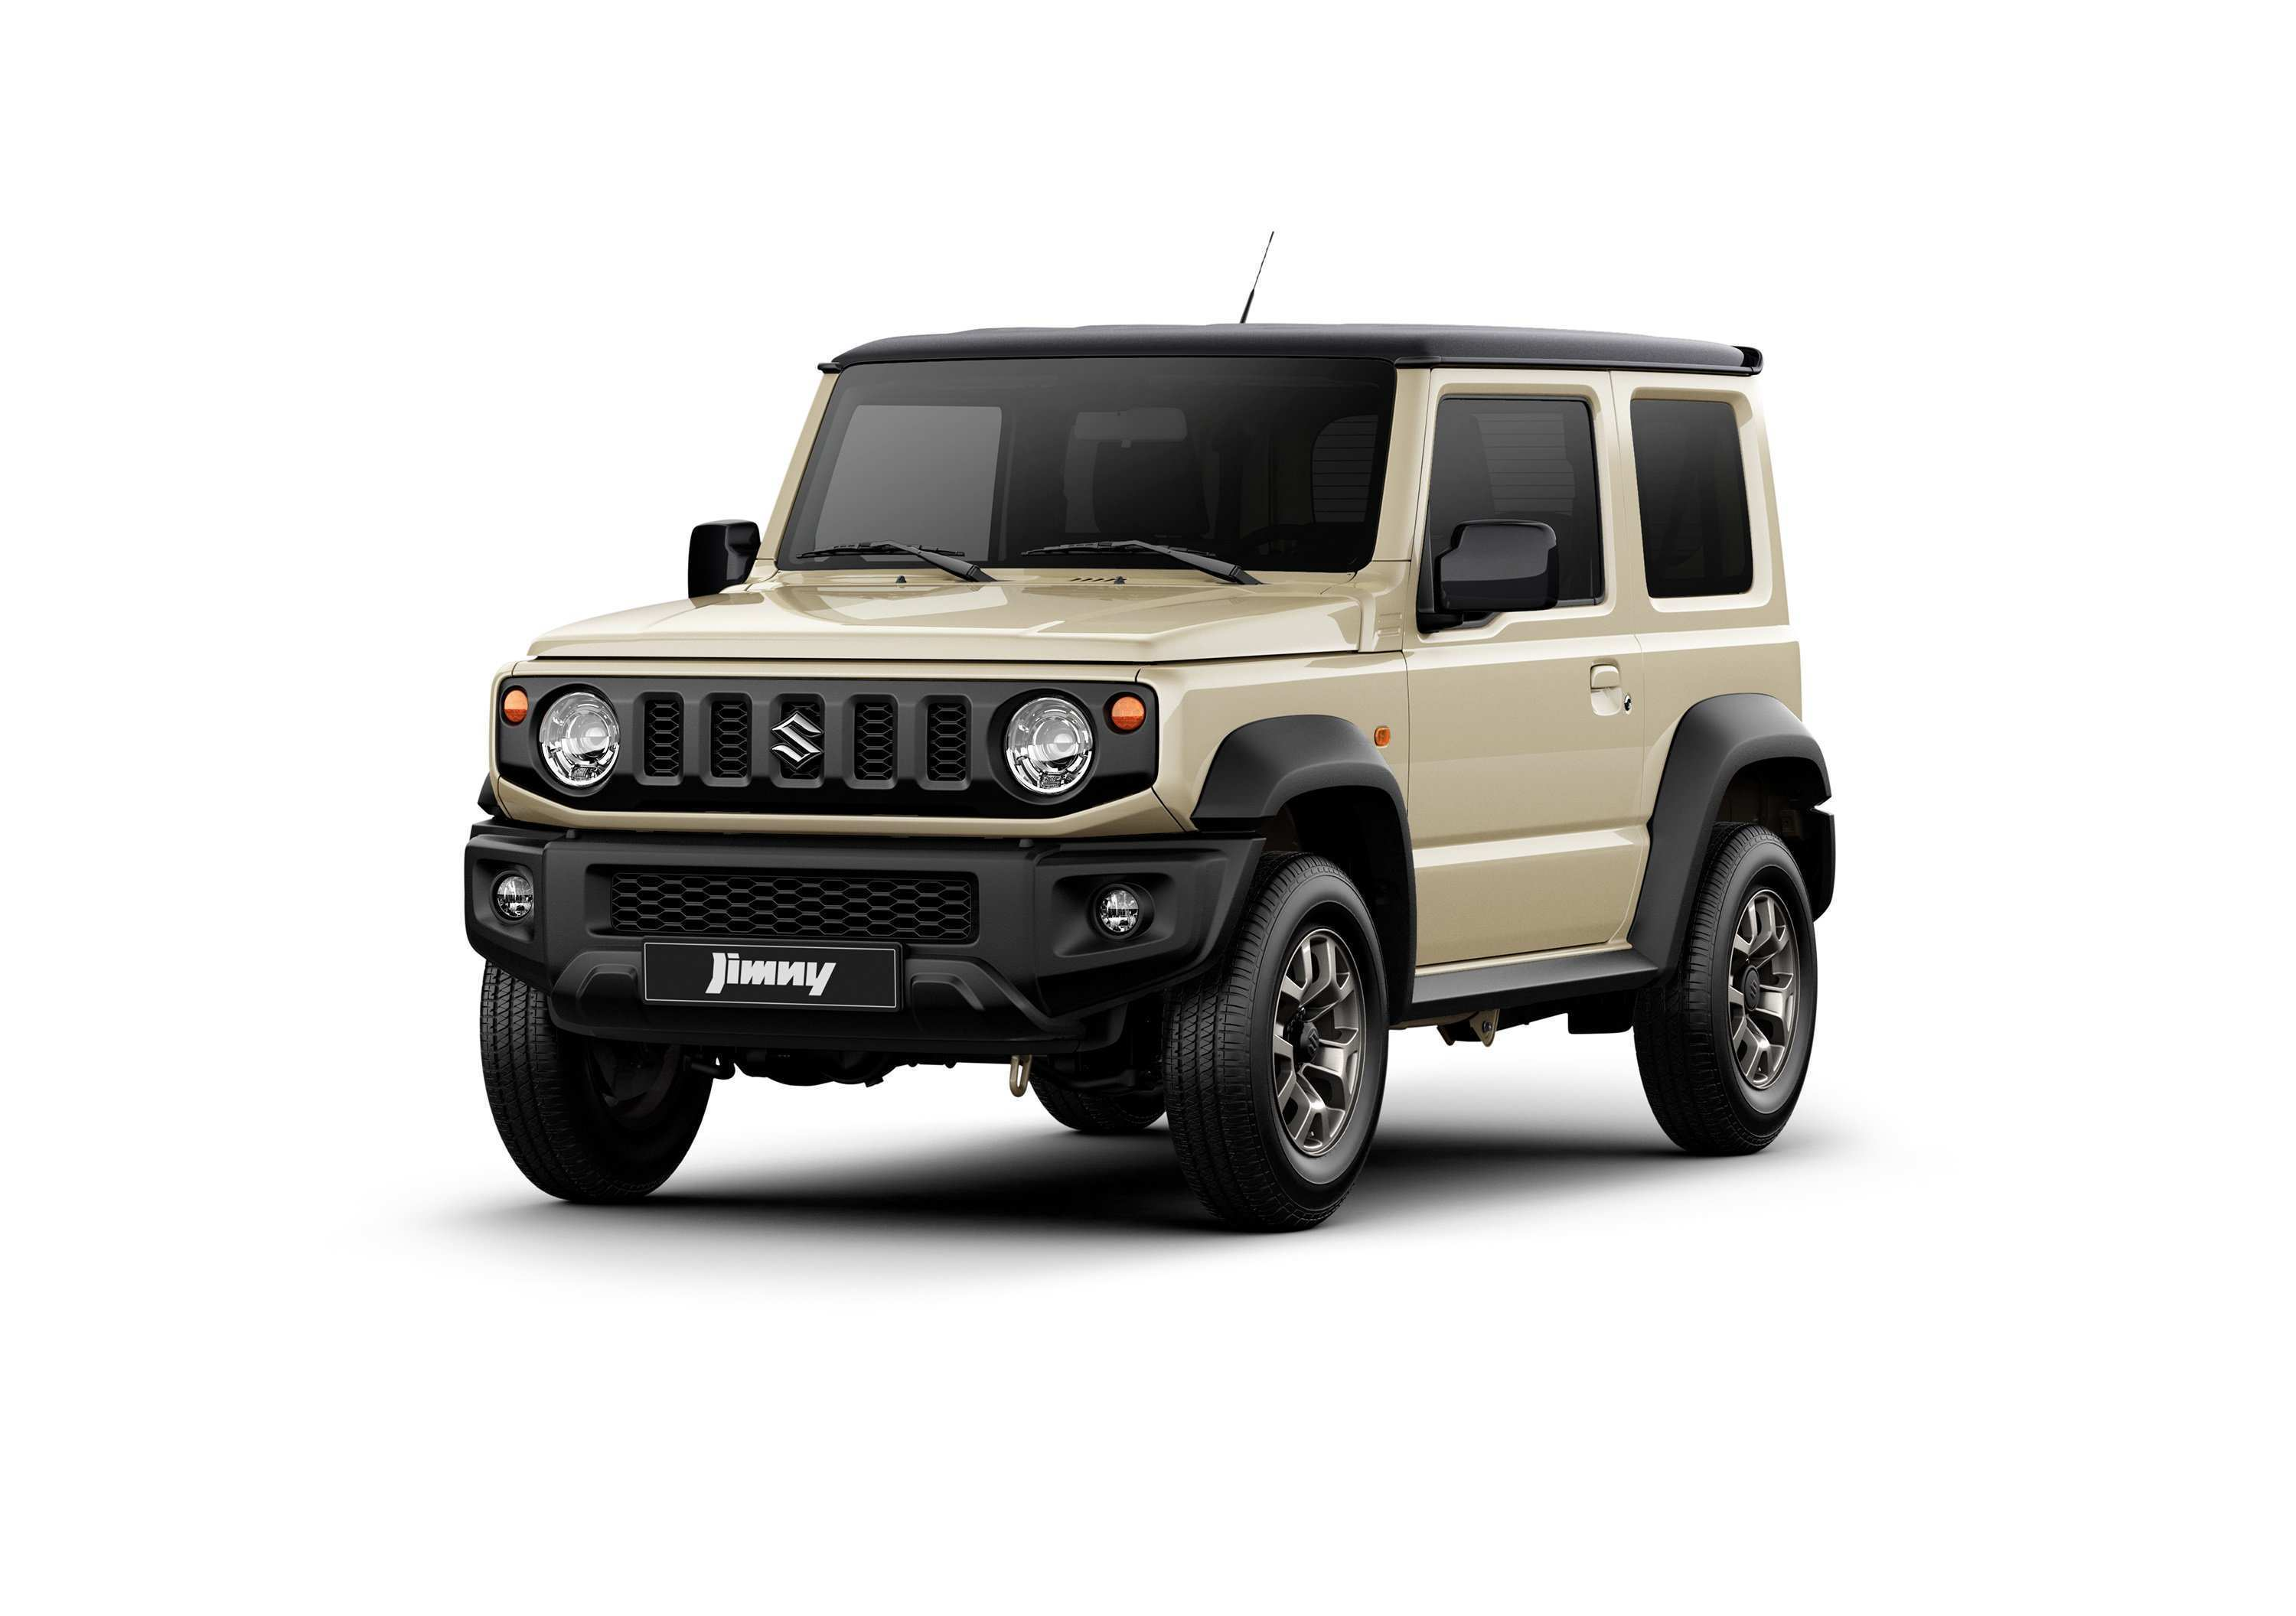 80 Concept of Suzuki Jimny 2020 Model Model by Suzuki Jimny 2020 Model